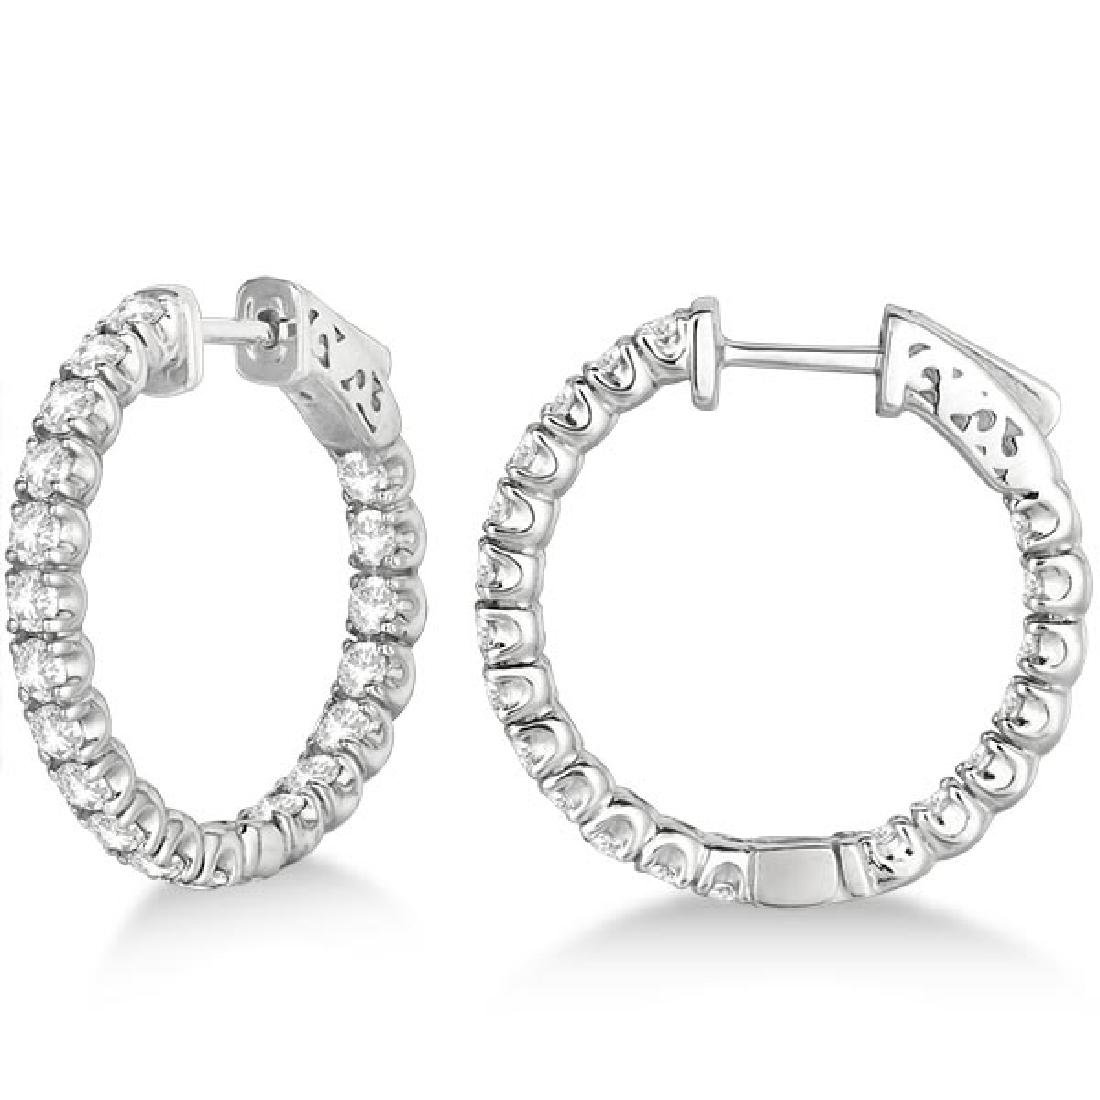 Small Fancy Round Diamond Hoop Earrings 14k White Gold